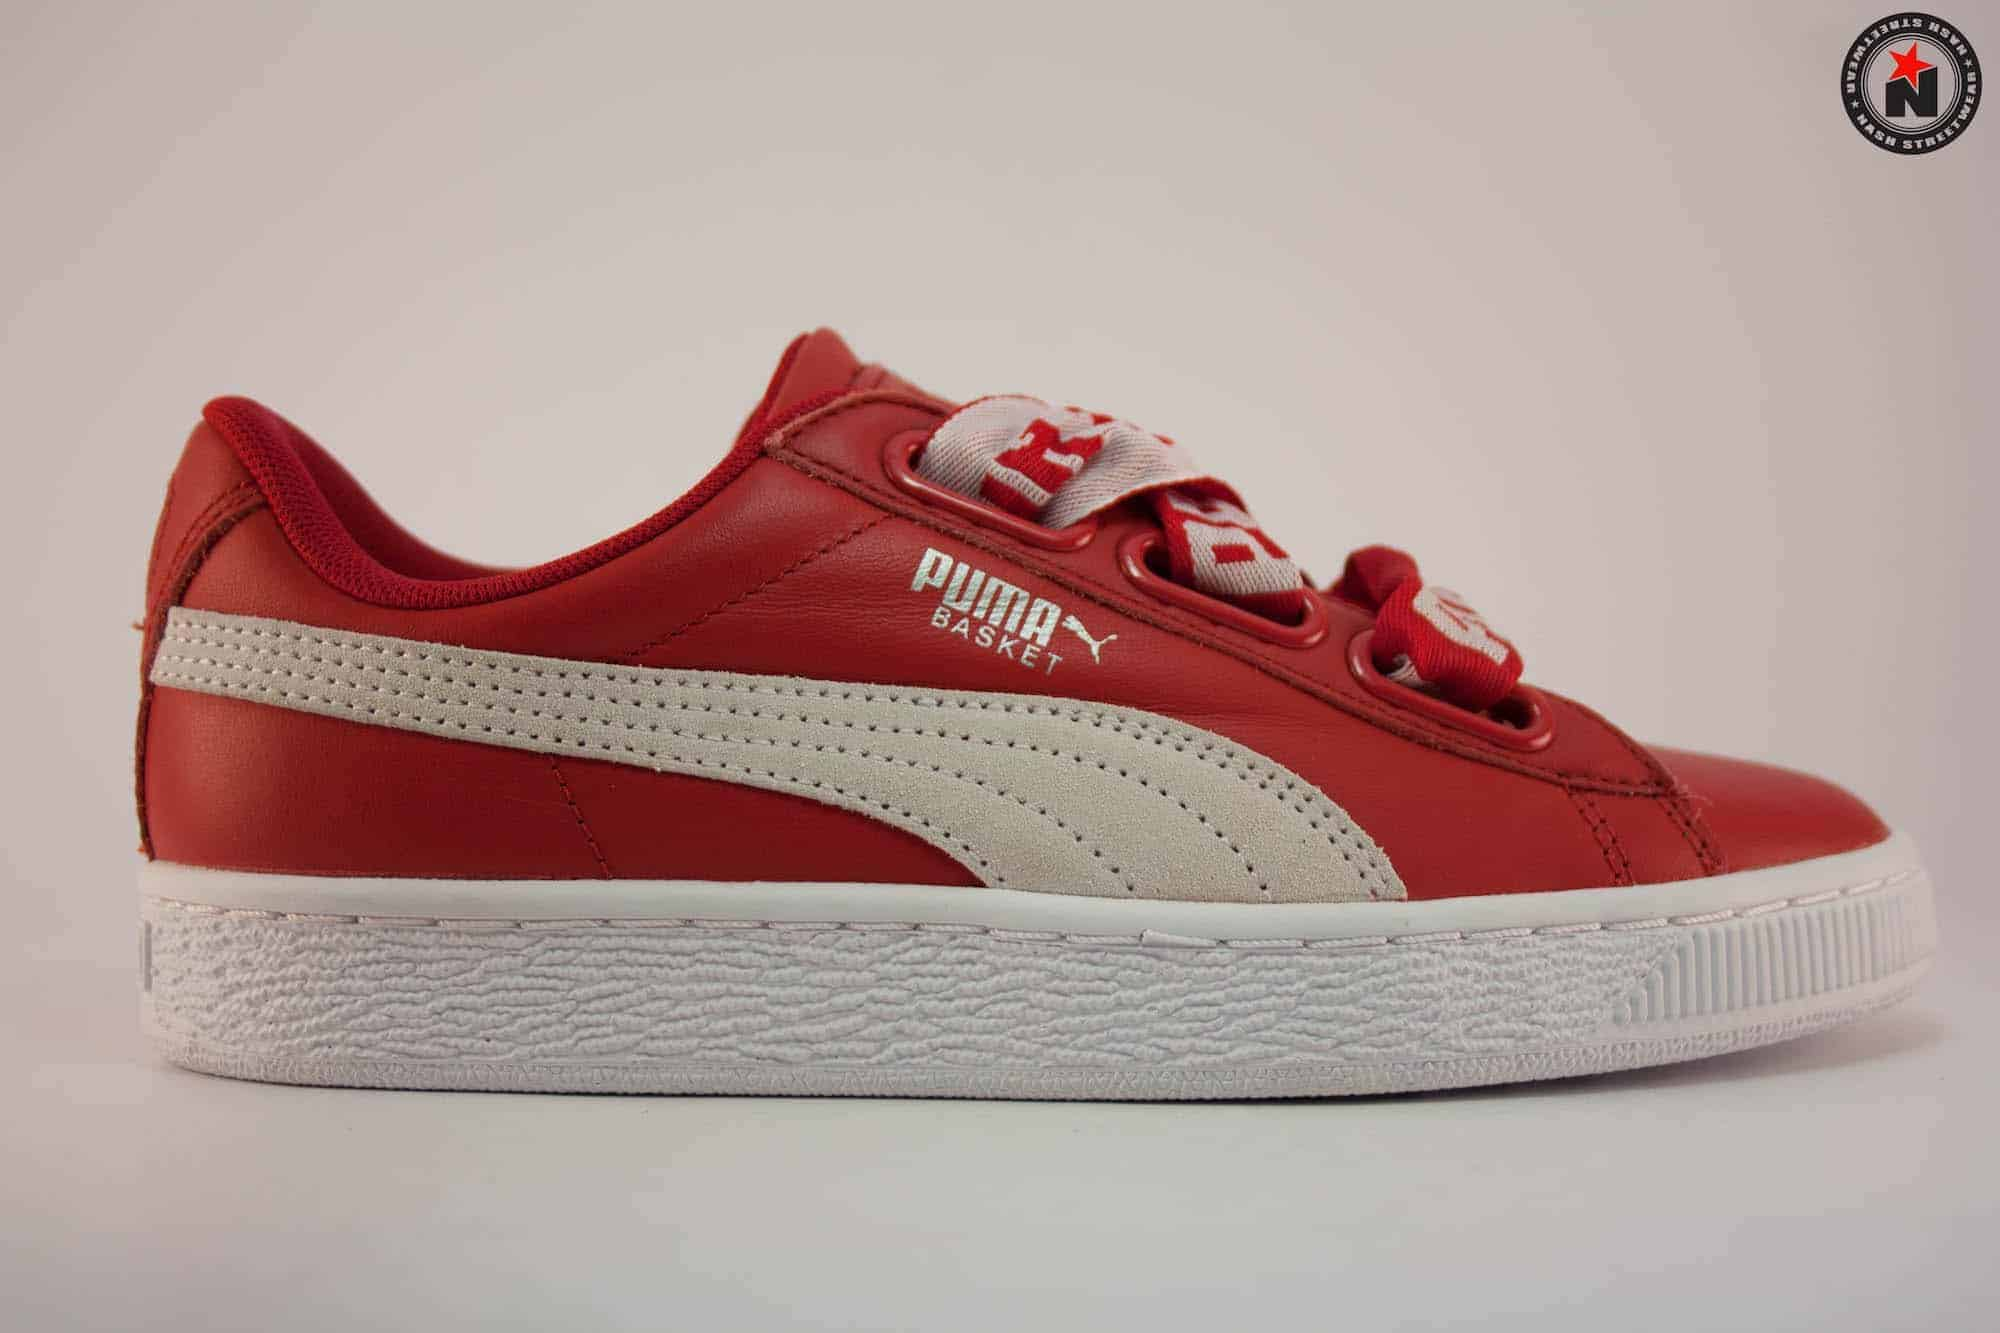 sports shoes 5ad2d 1b70a Puma BASKET HEART DE - Chez Nash